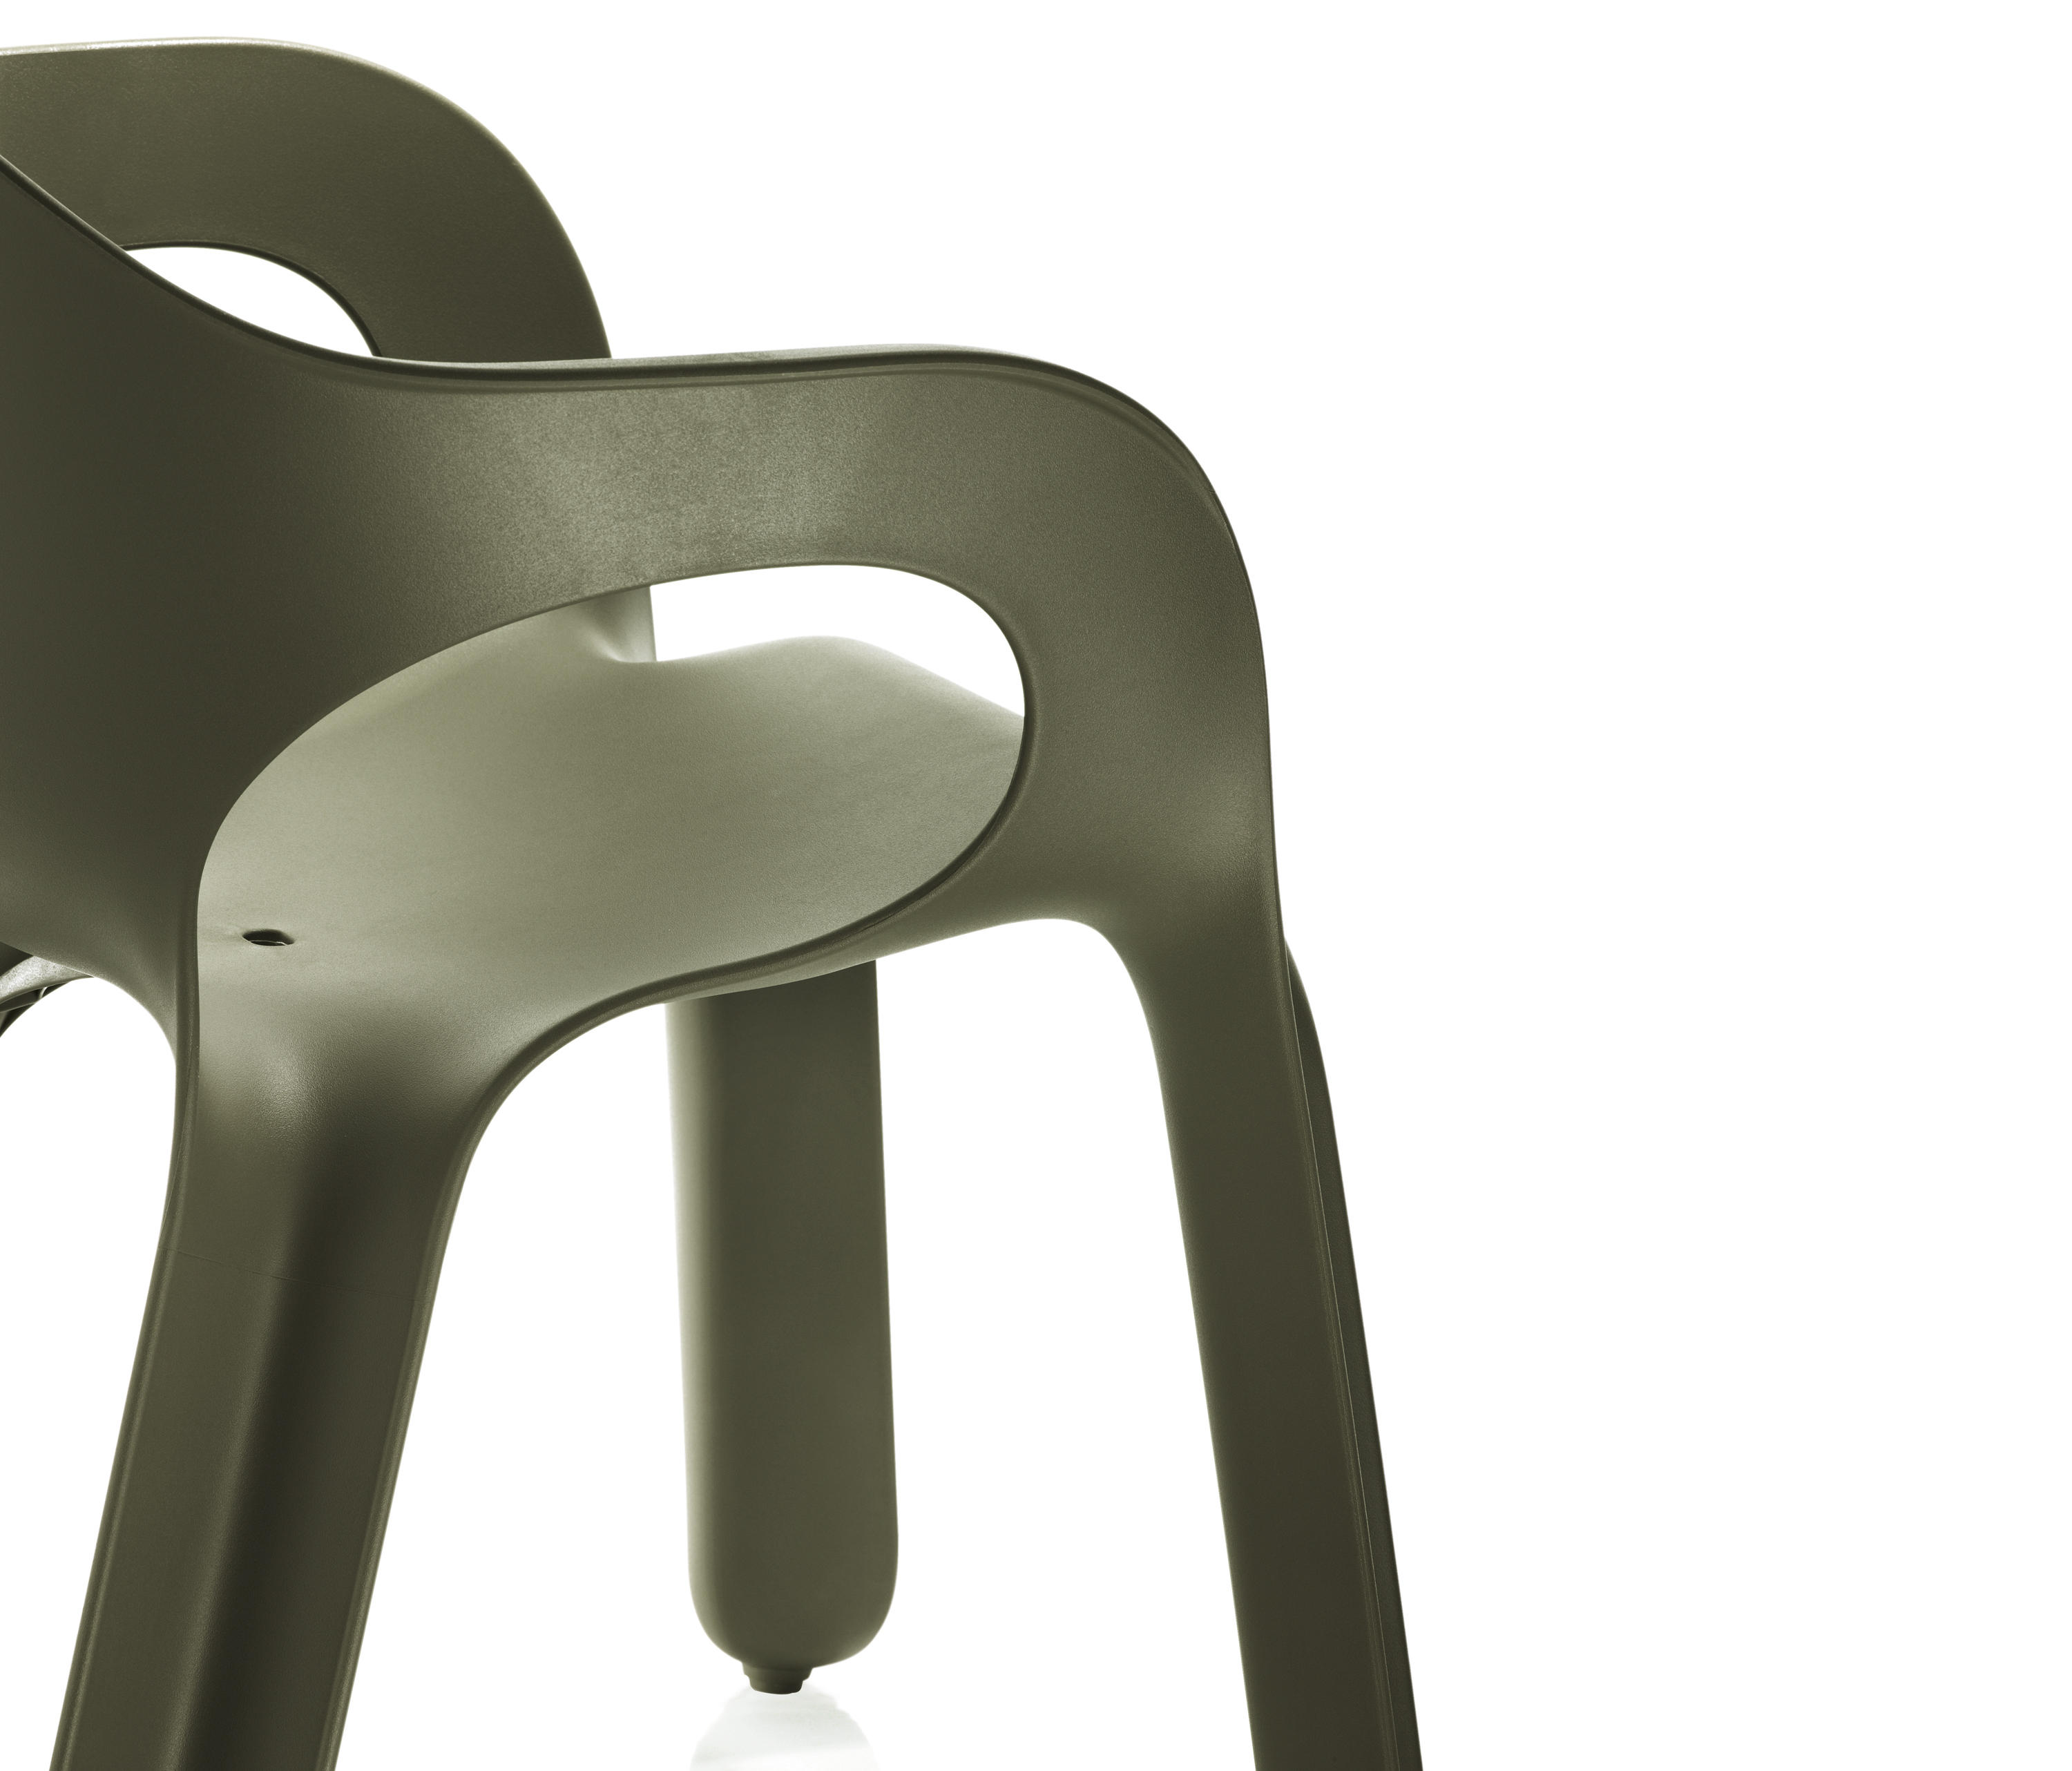 Easy chair sillas de magis architonic for Magis easy chair